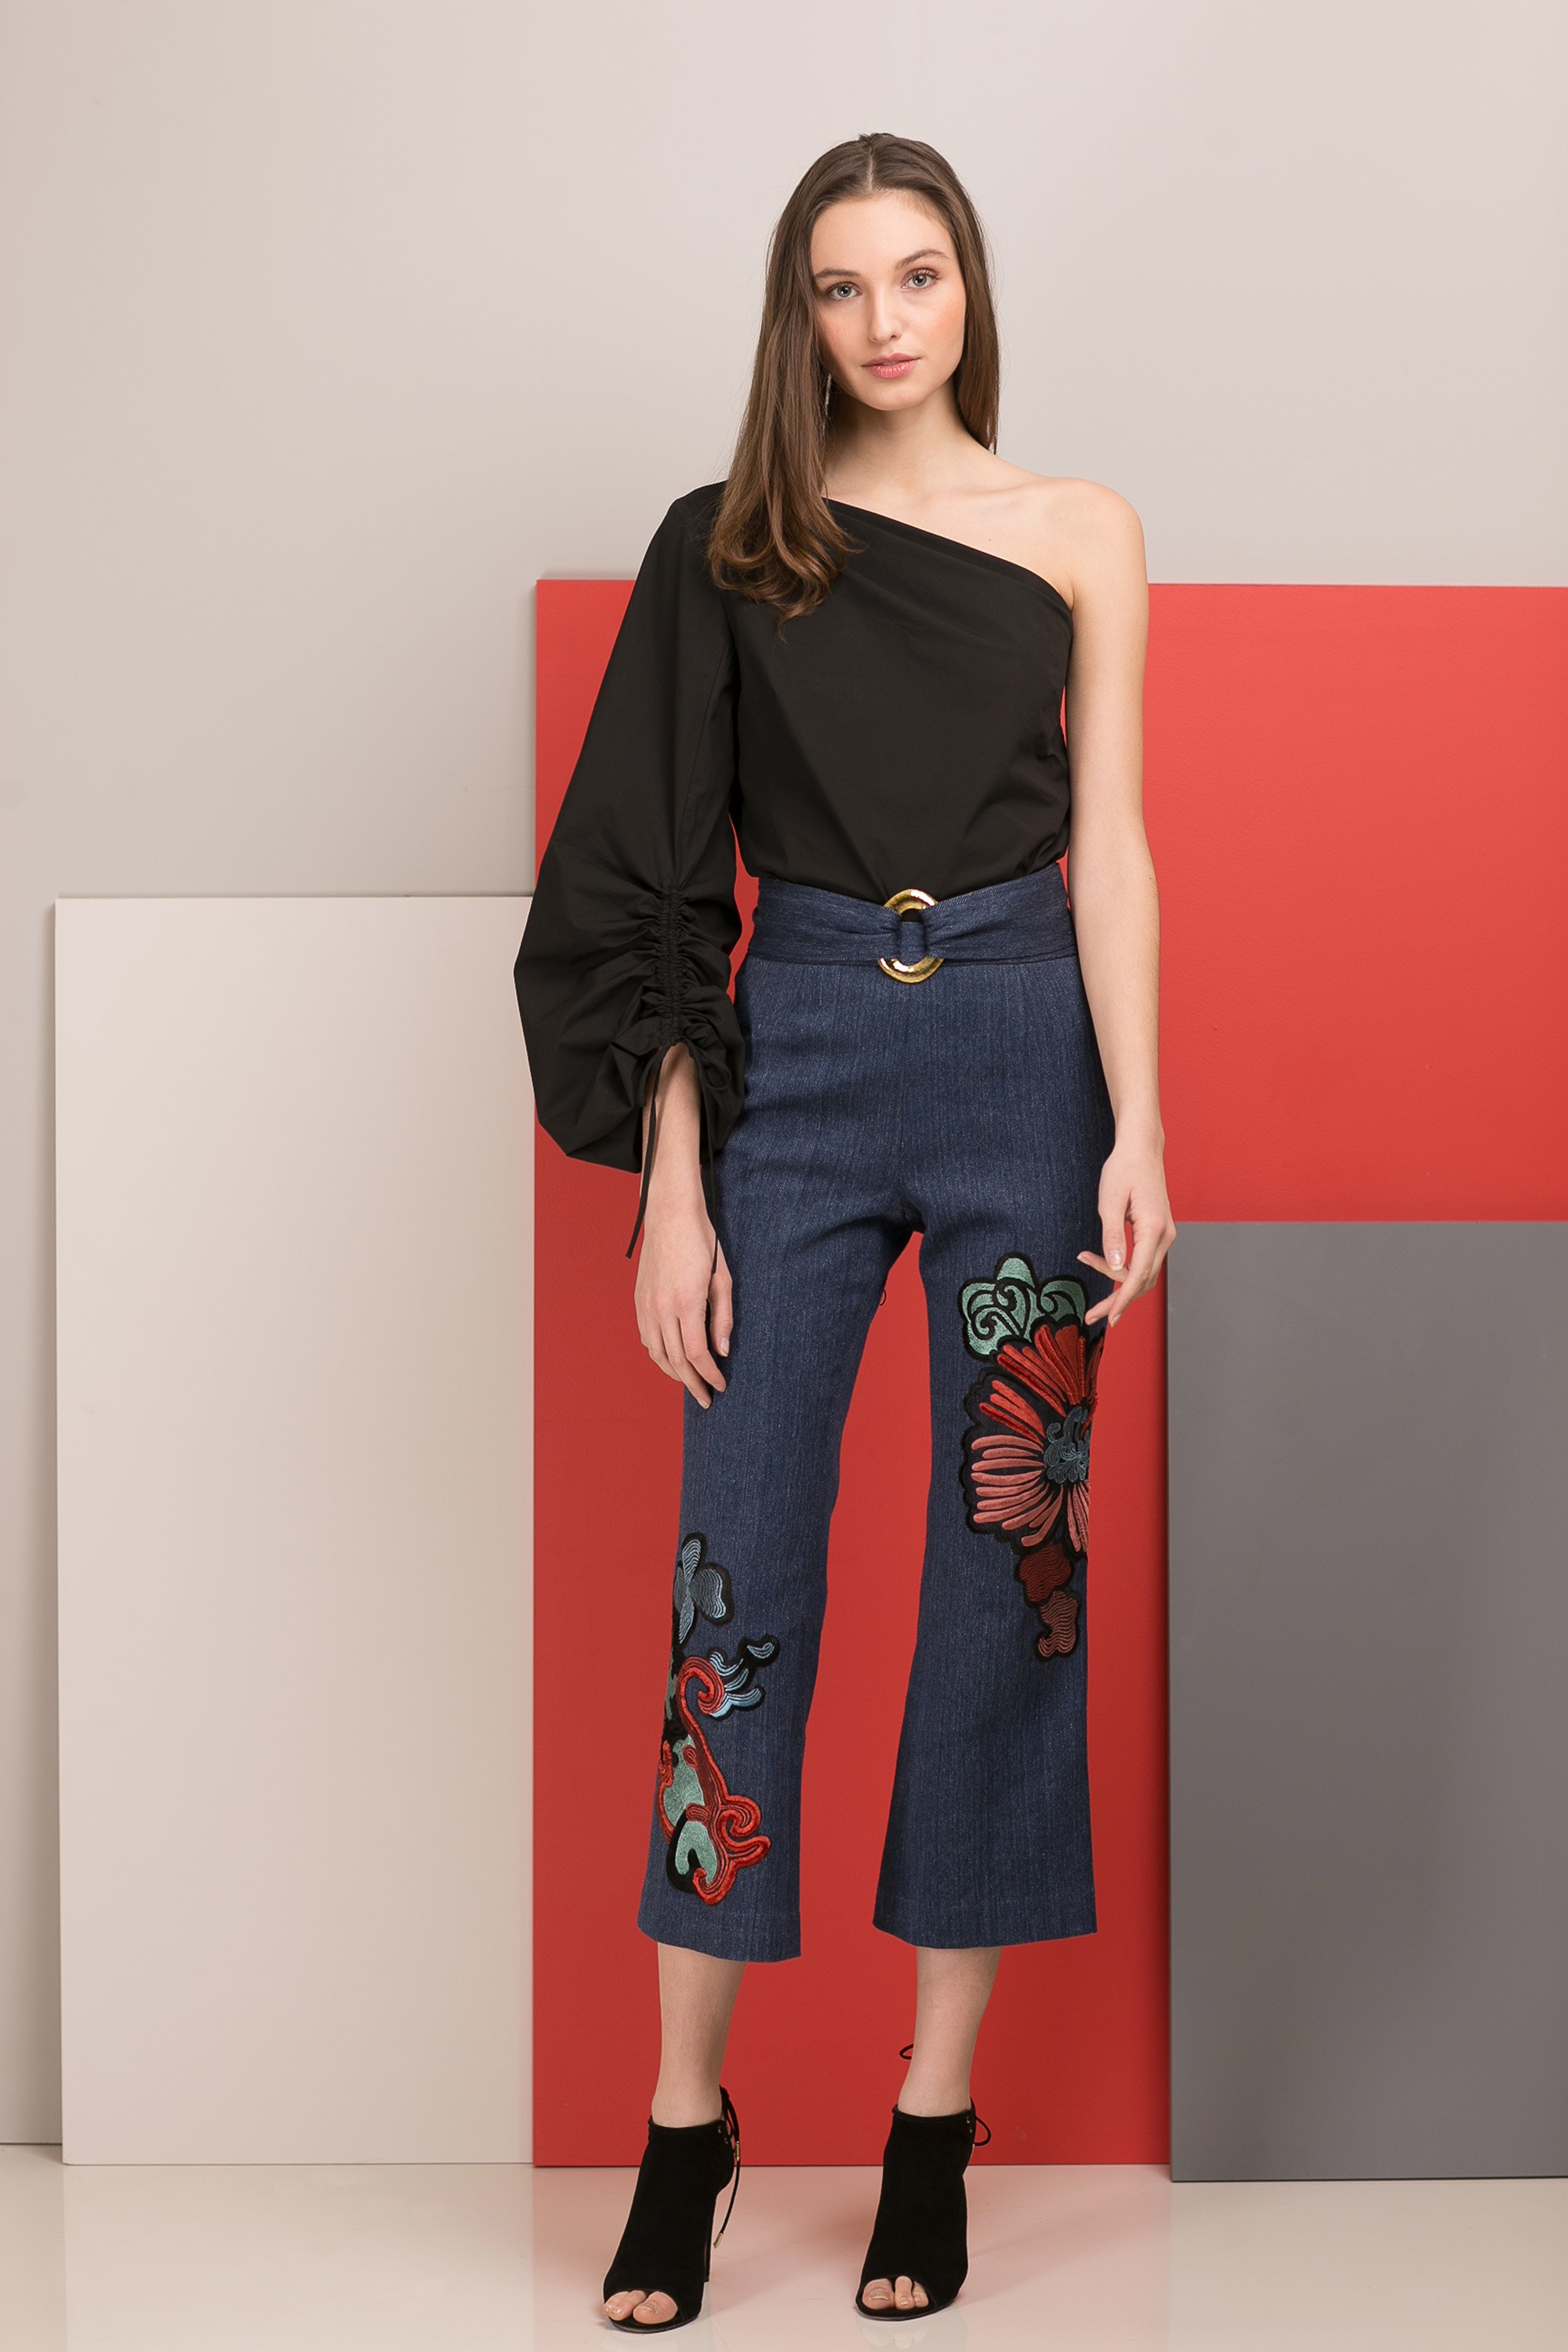 josie-natori-pre-fall-2017-fashion-show-the-impression-10